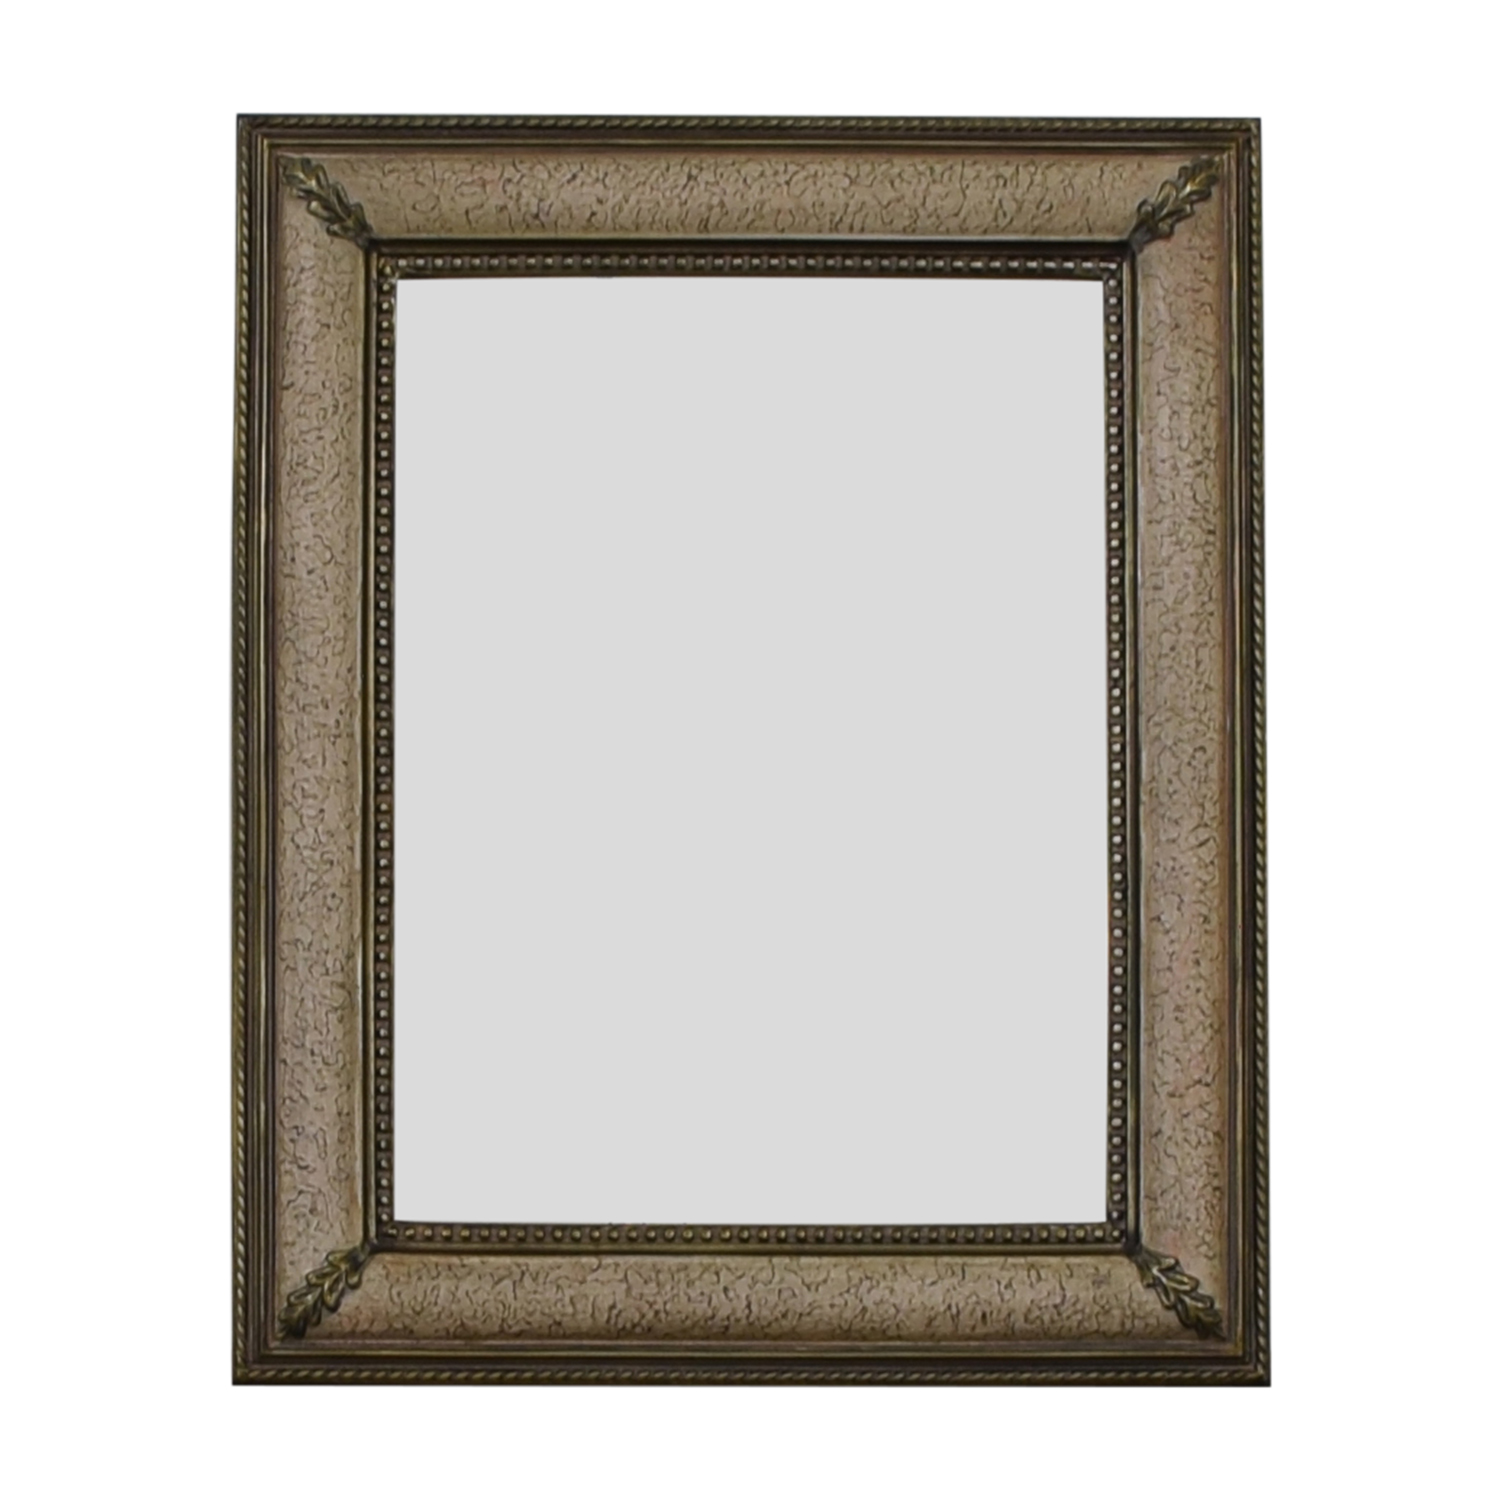 Uttermost Rustic Framed Mirror sale